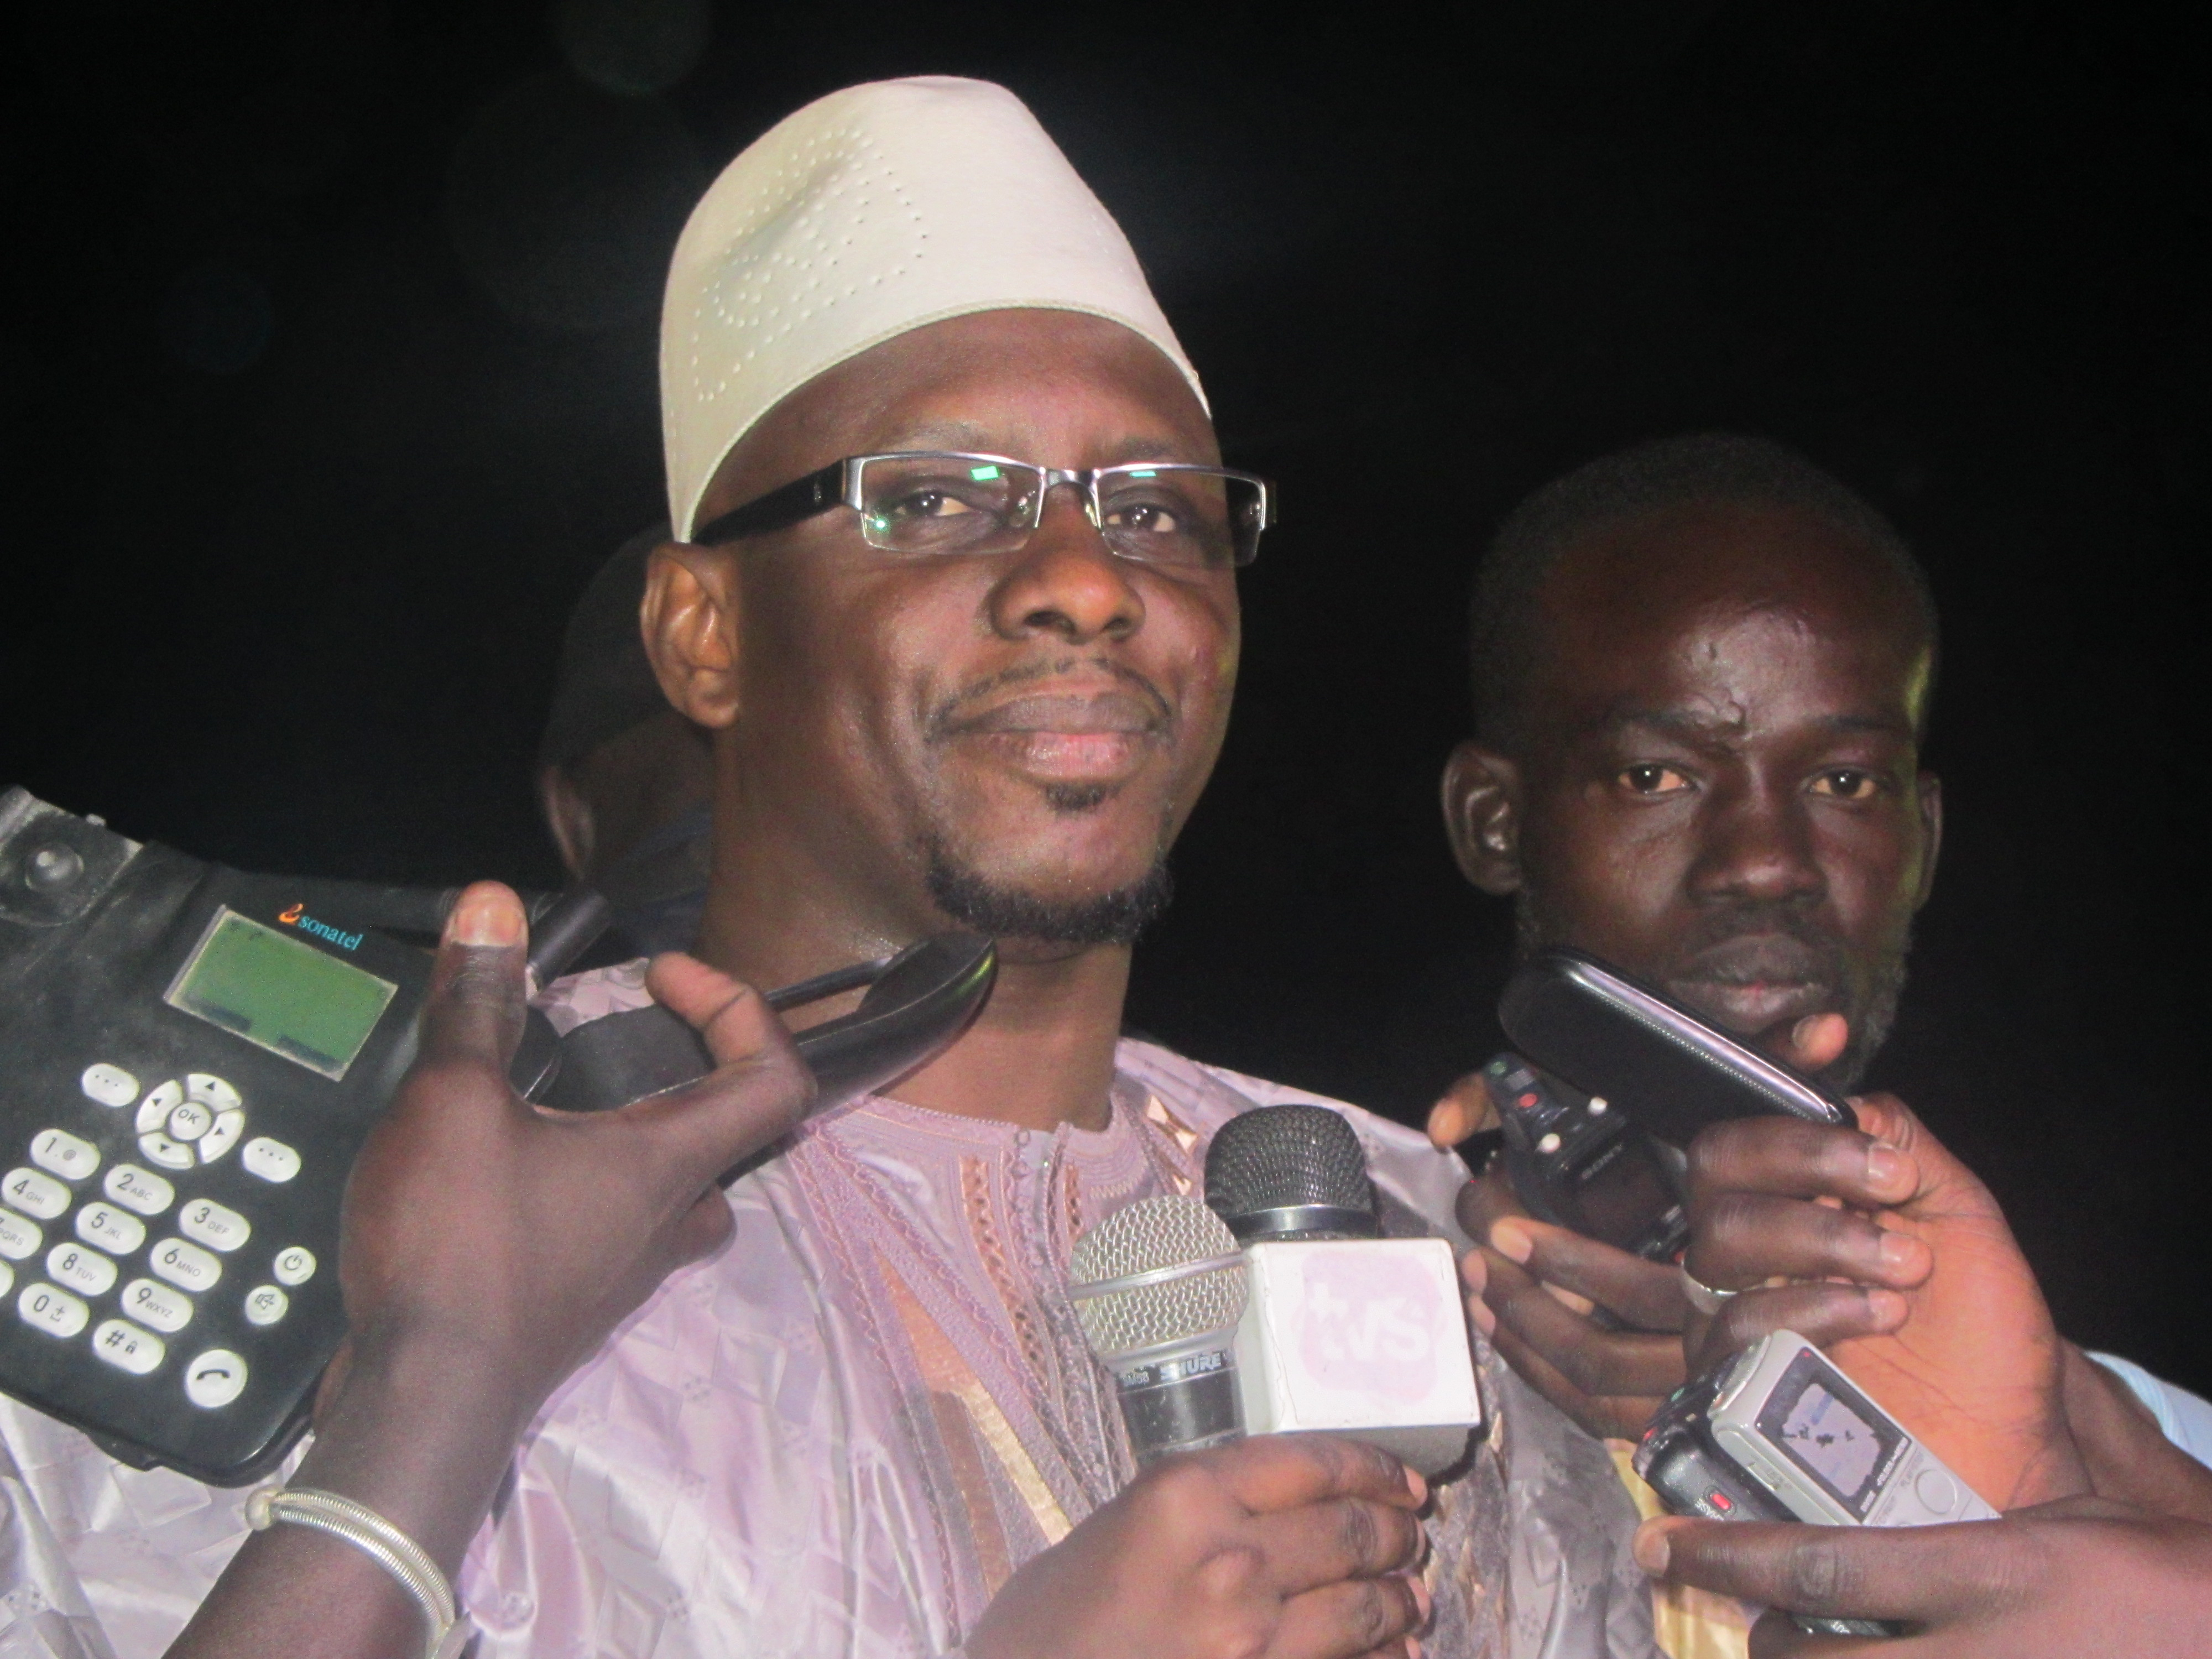 Finance islamique : Moustapha Diop décline les ambitions de son département